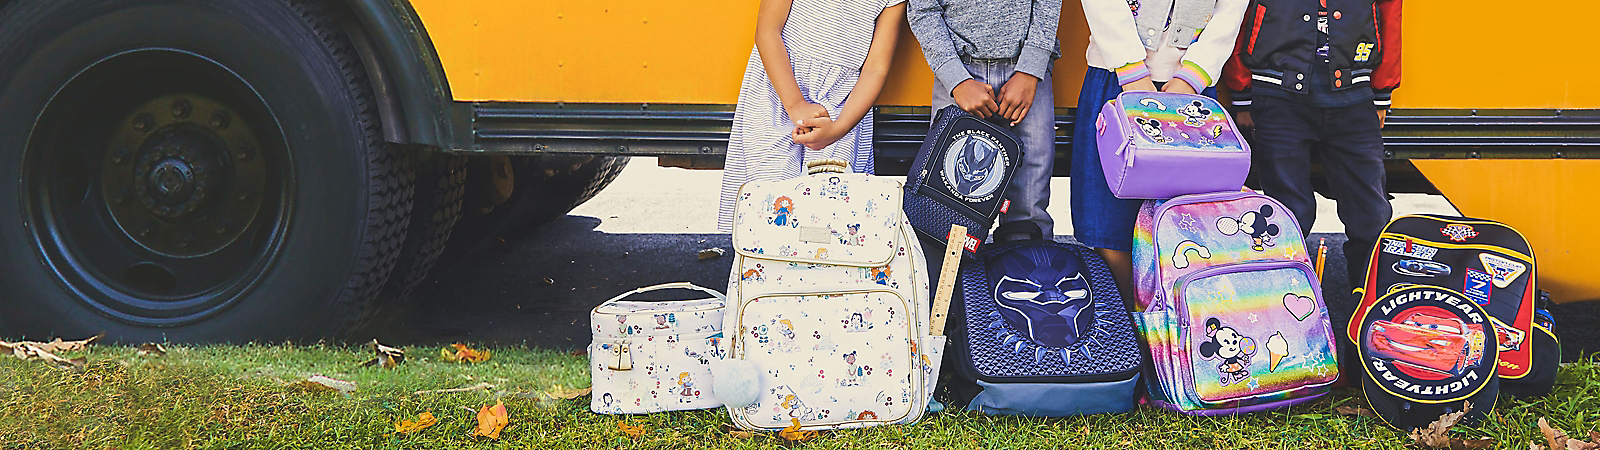 Background image of Back to School Accessories